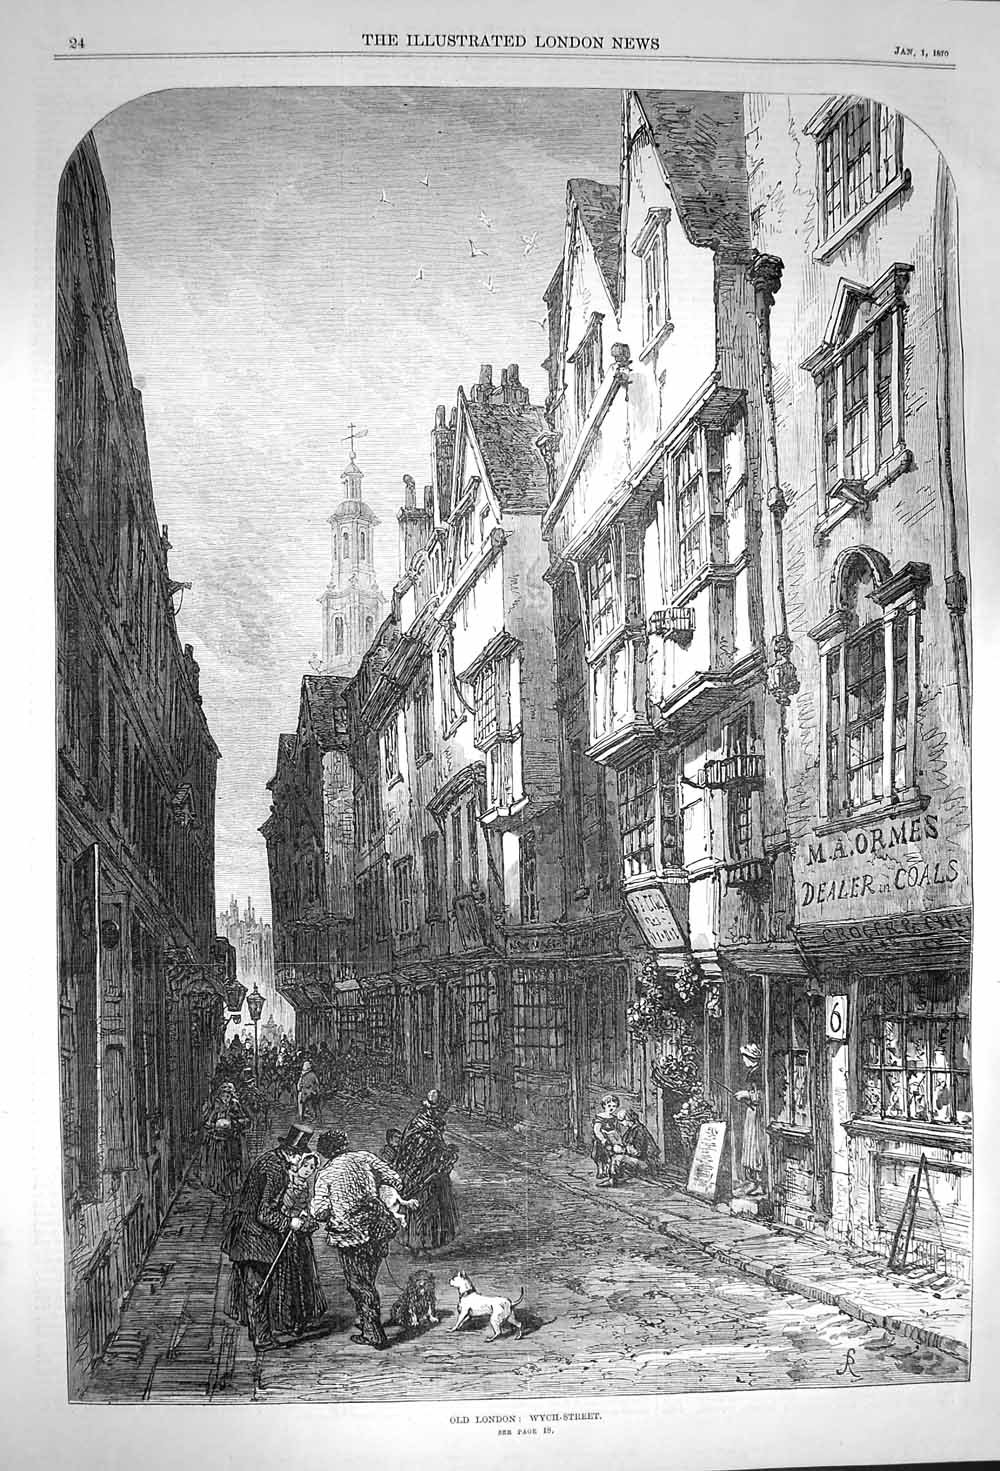 Old Antique Print 1870 Fine Art View London Wych Street Shops 024P156 old-print P1560870024